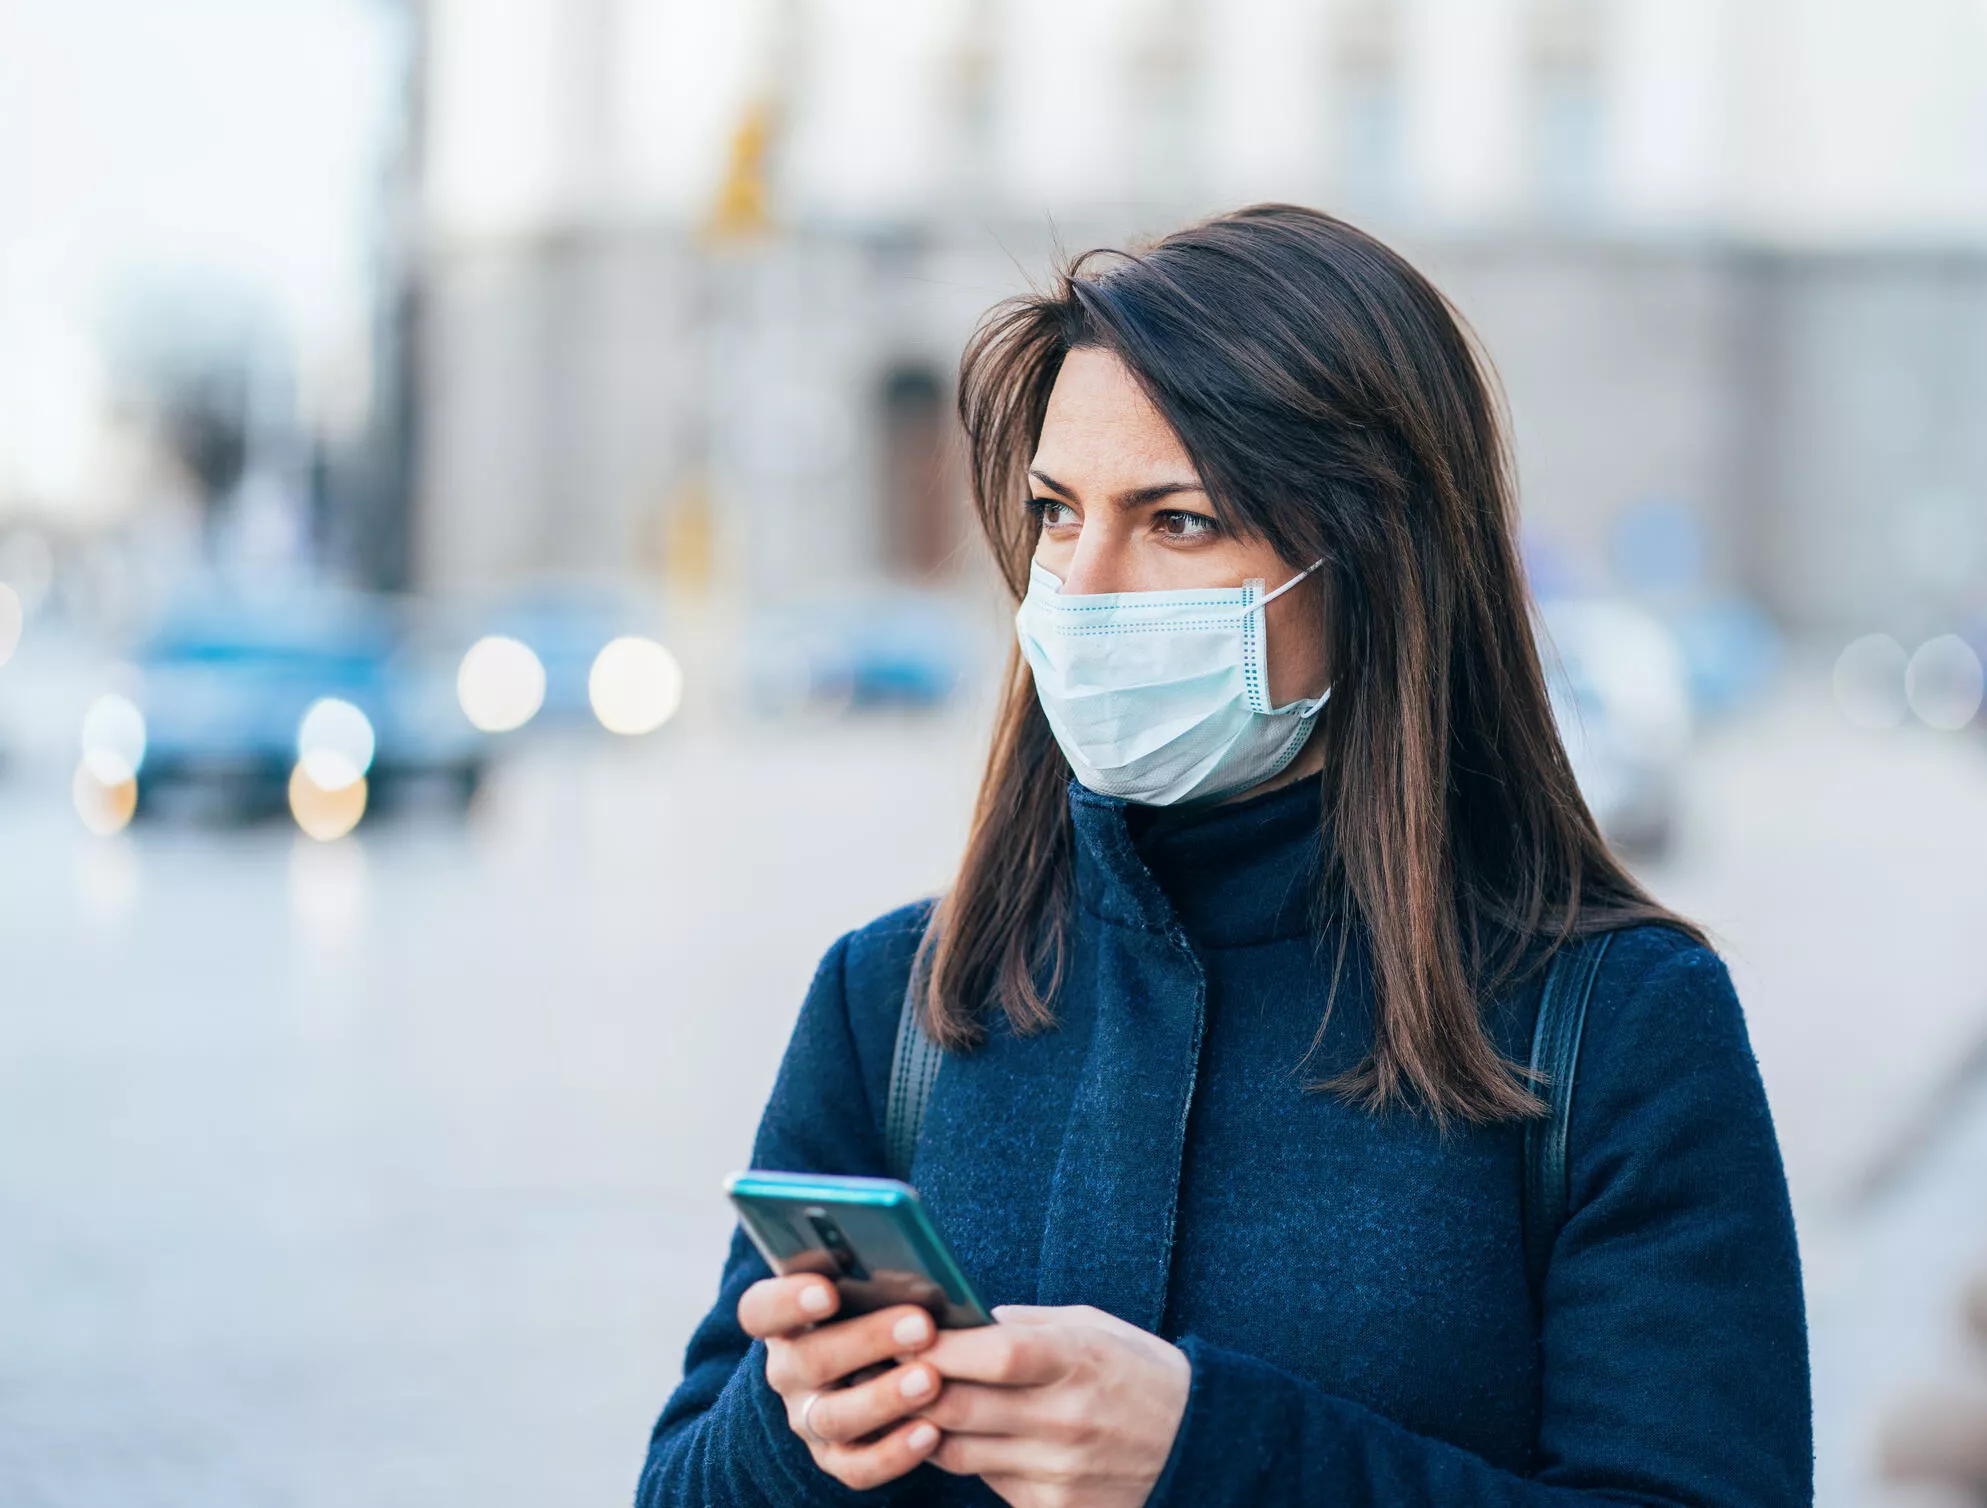 Woman Wearing A Facemask (Photo)